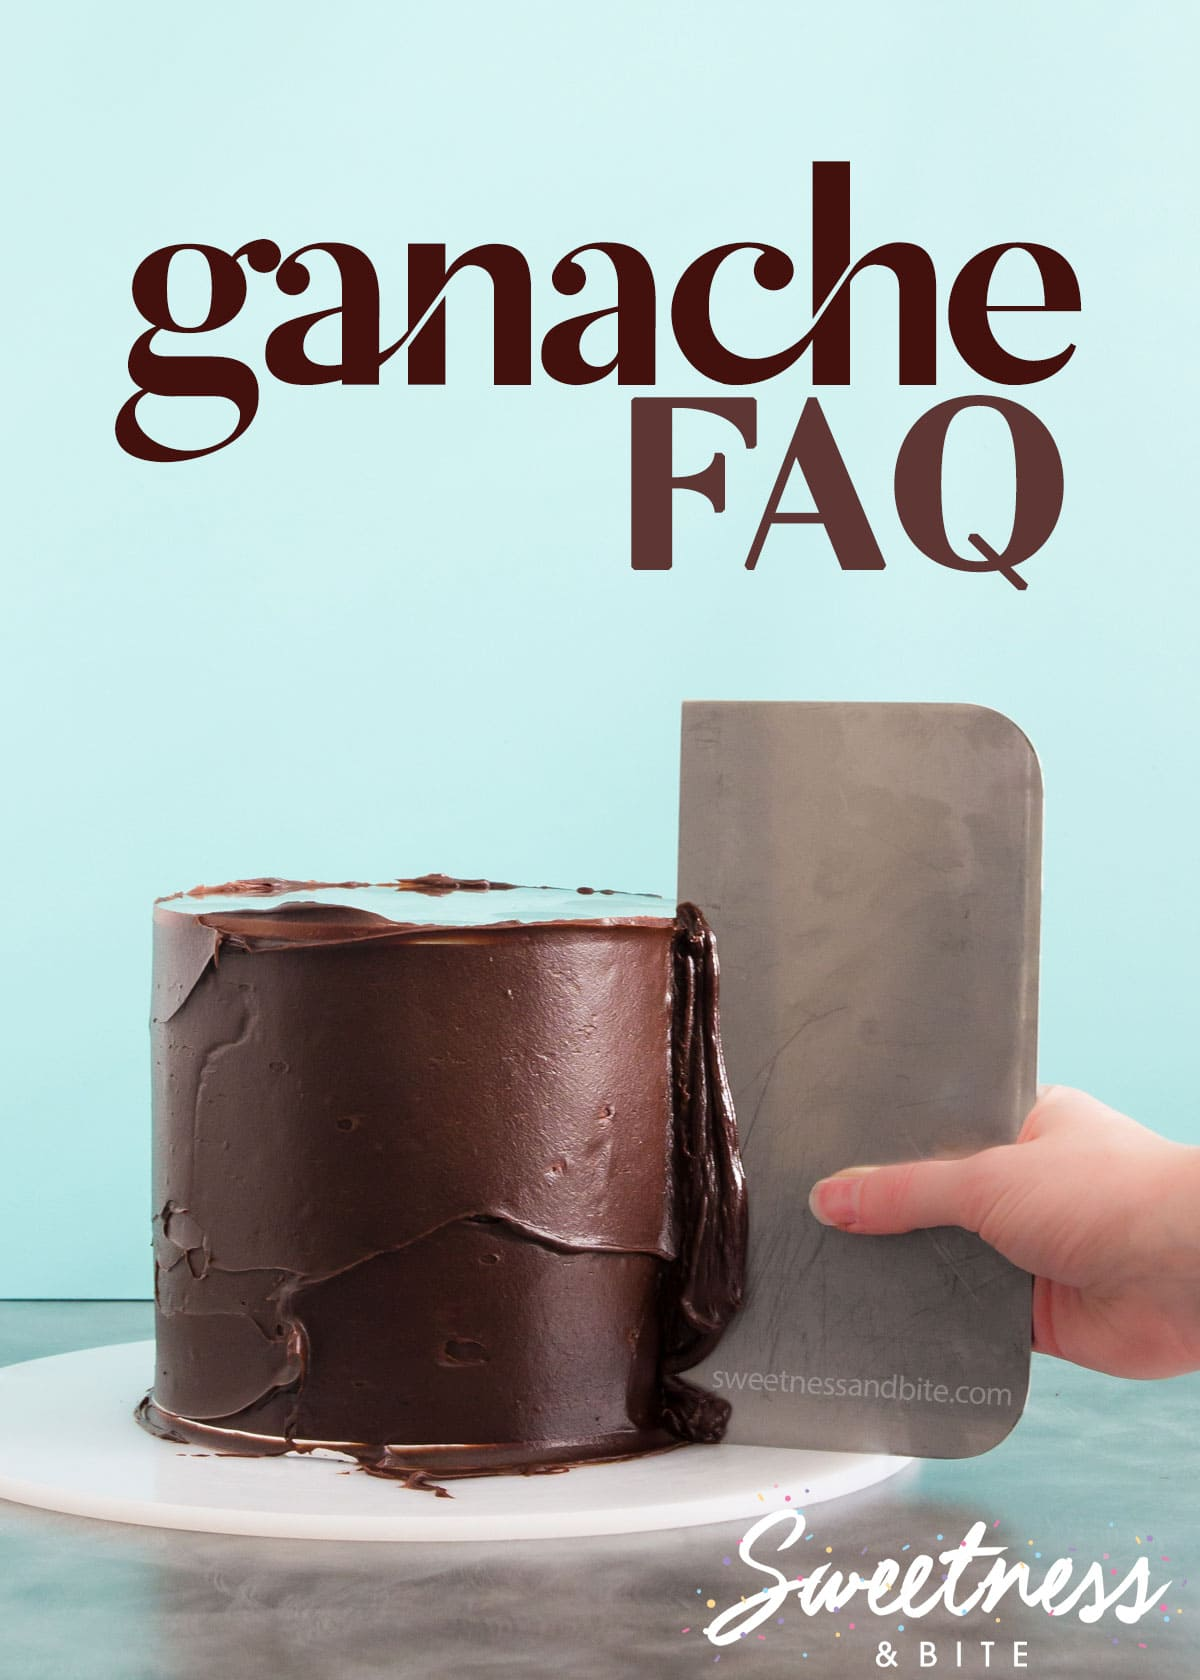 Ganache FAQ. How to Ganache a Cake Frequently Asked Questions ~ Sweetness & Bite